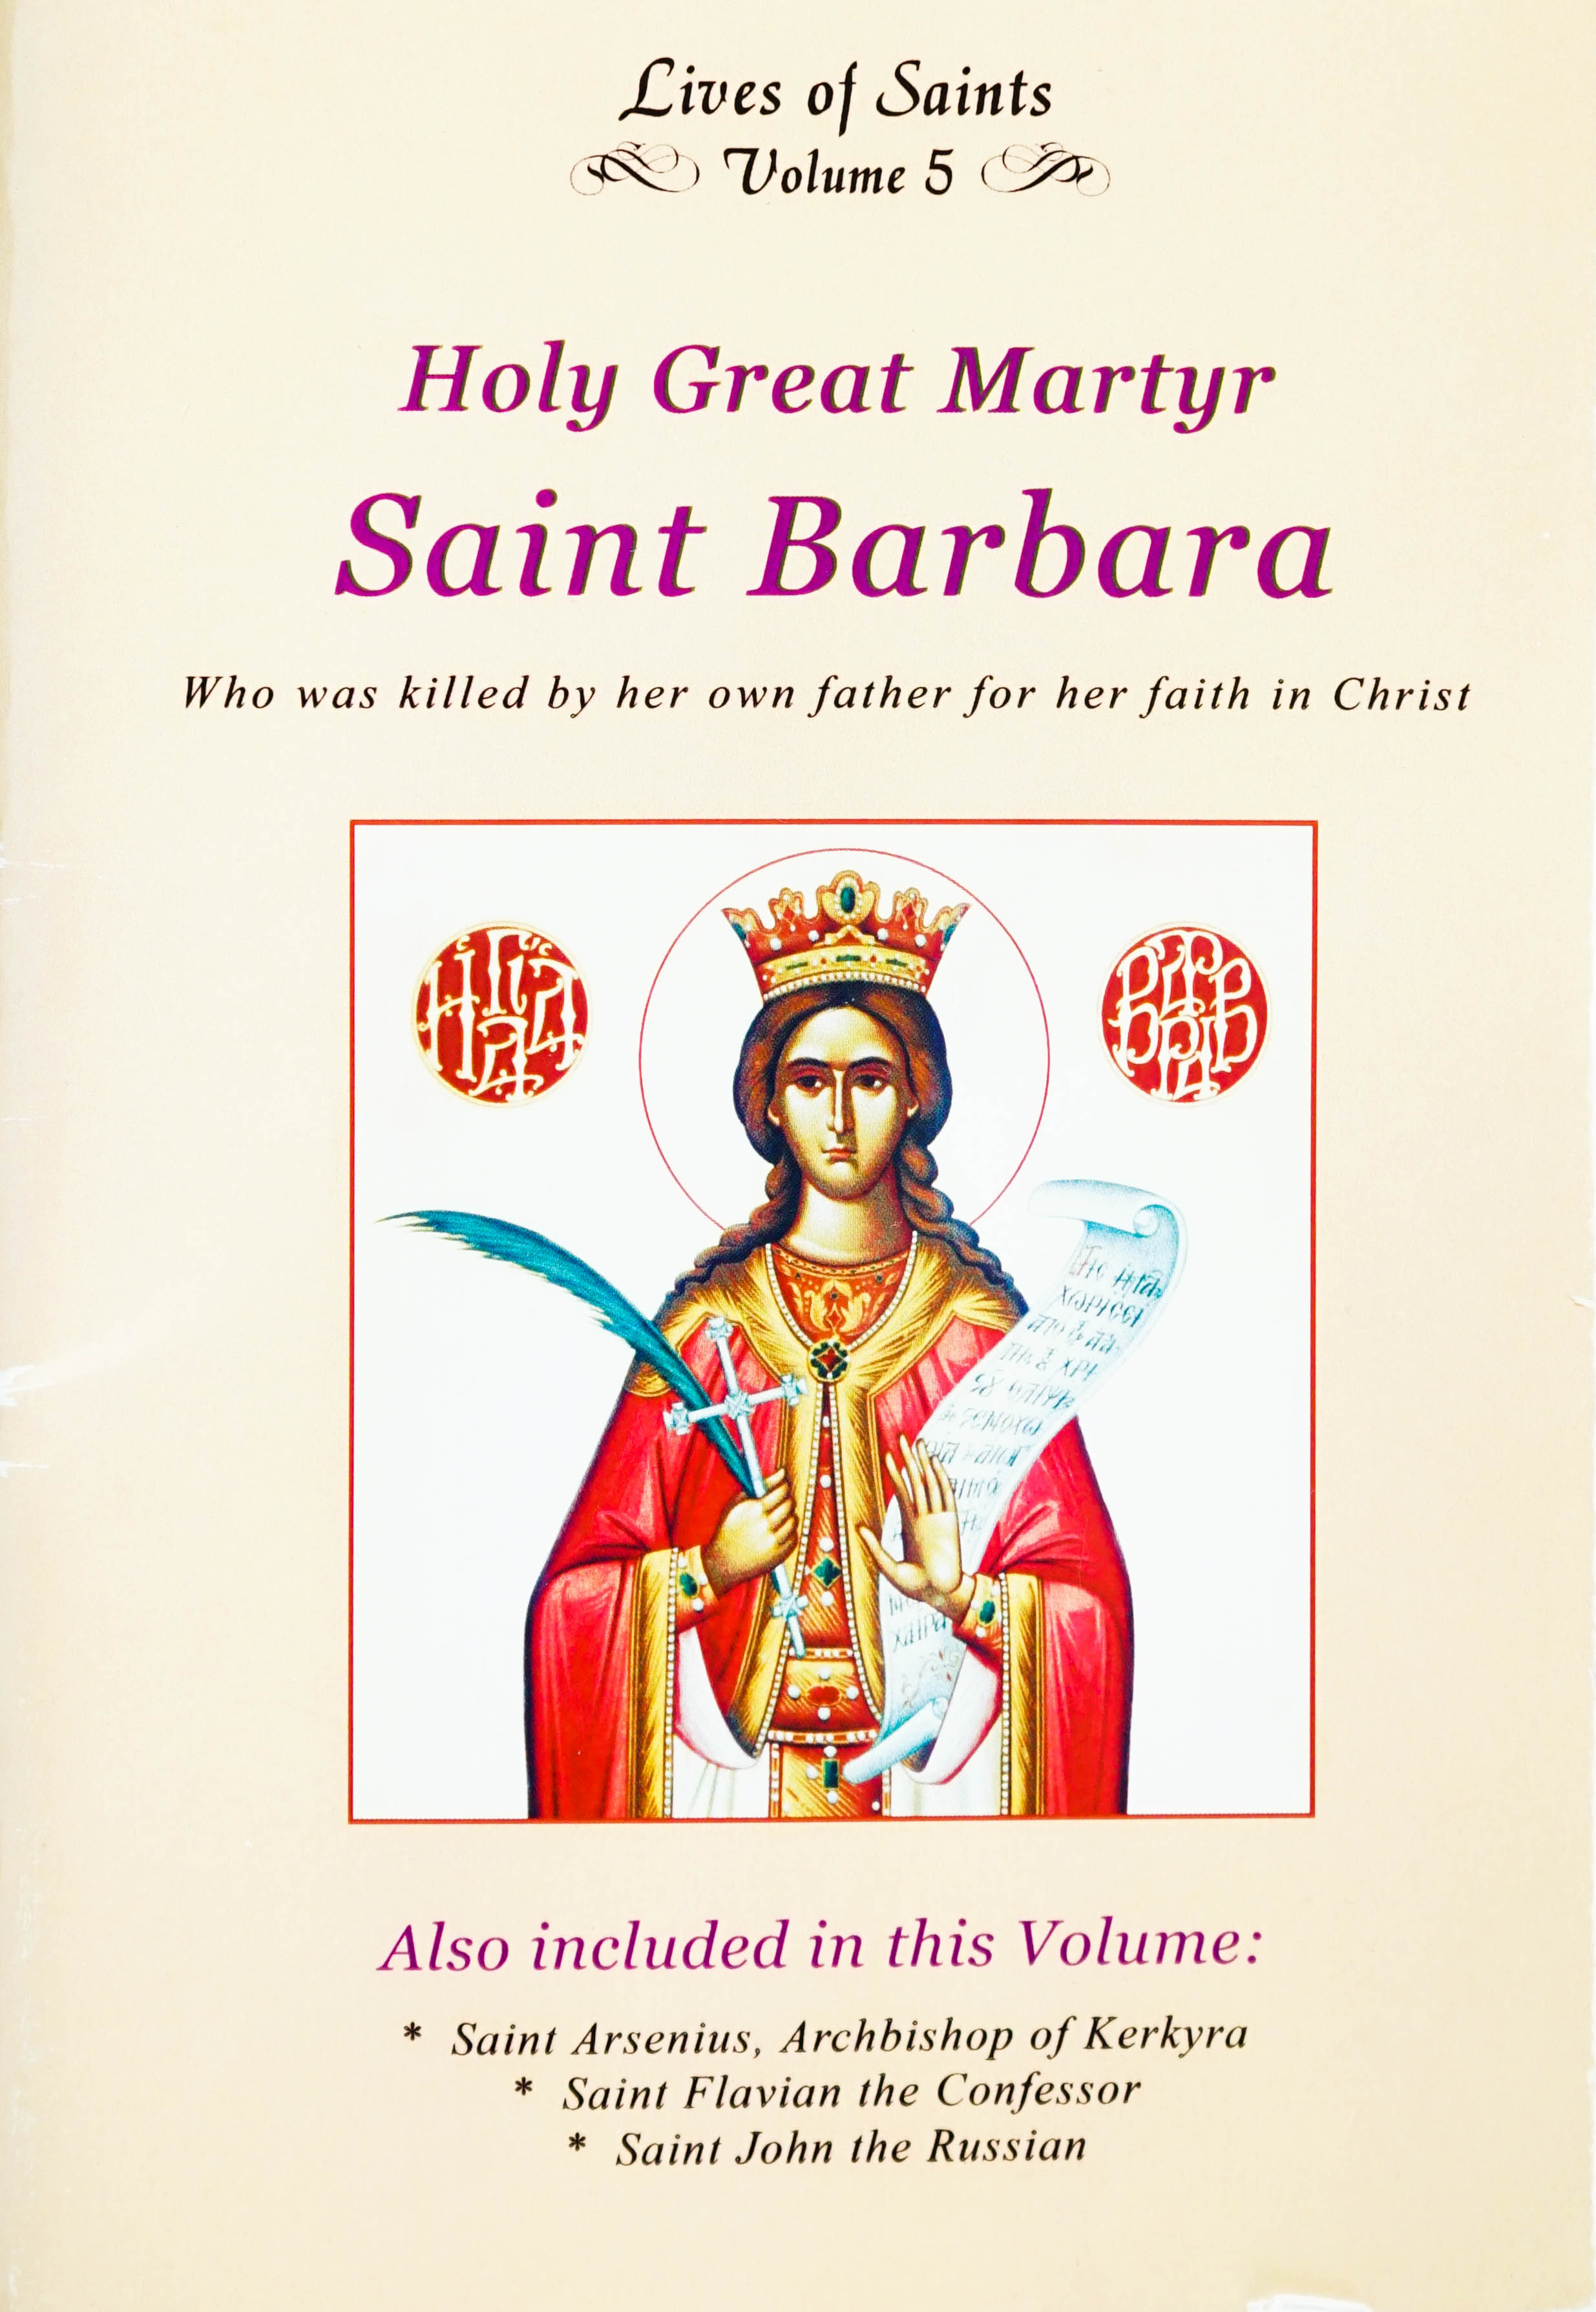 Lives of Saints Vol. 05: Holy Great Martyr Saint Barbara